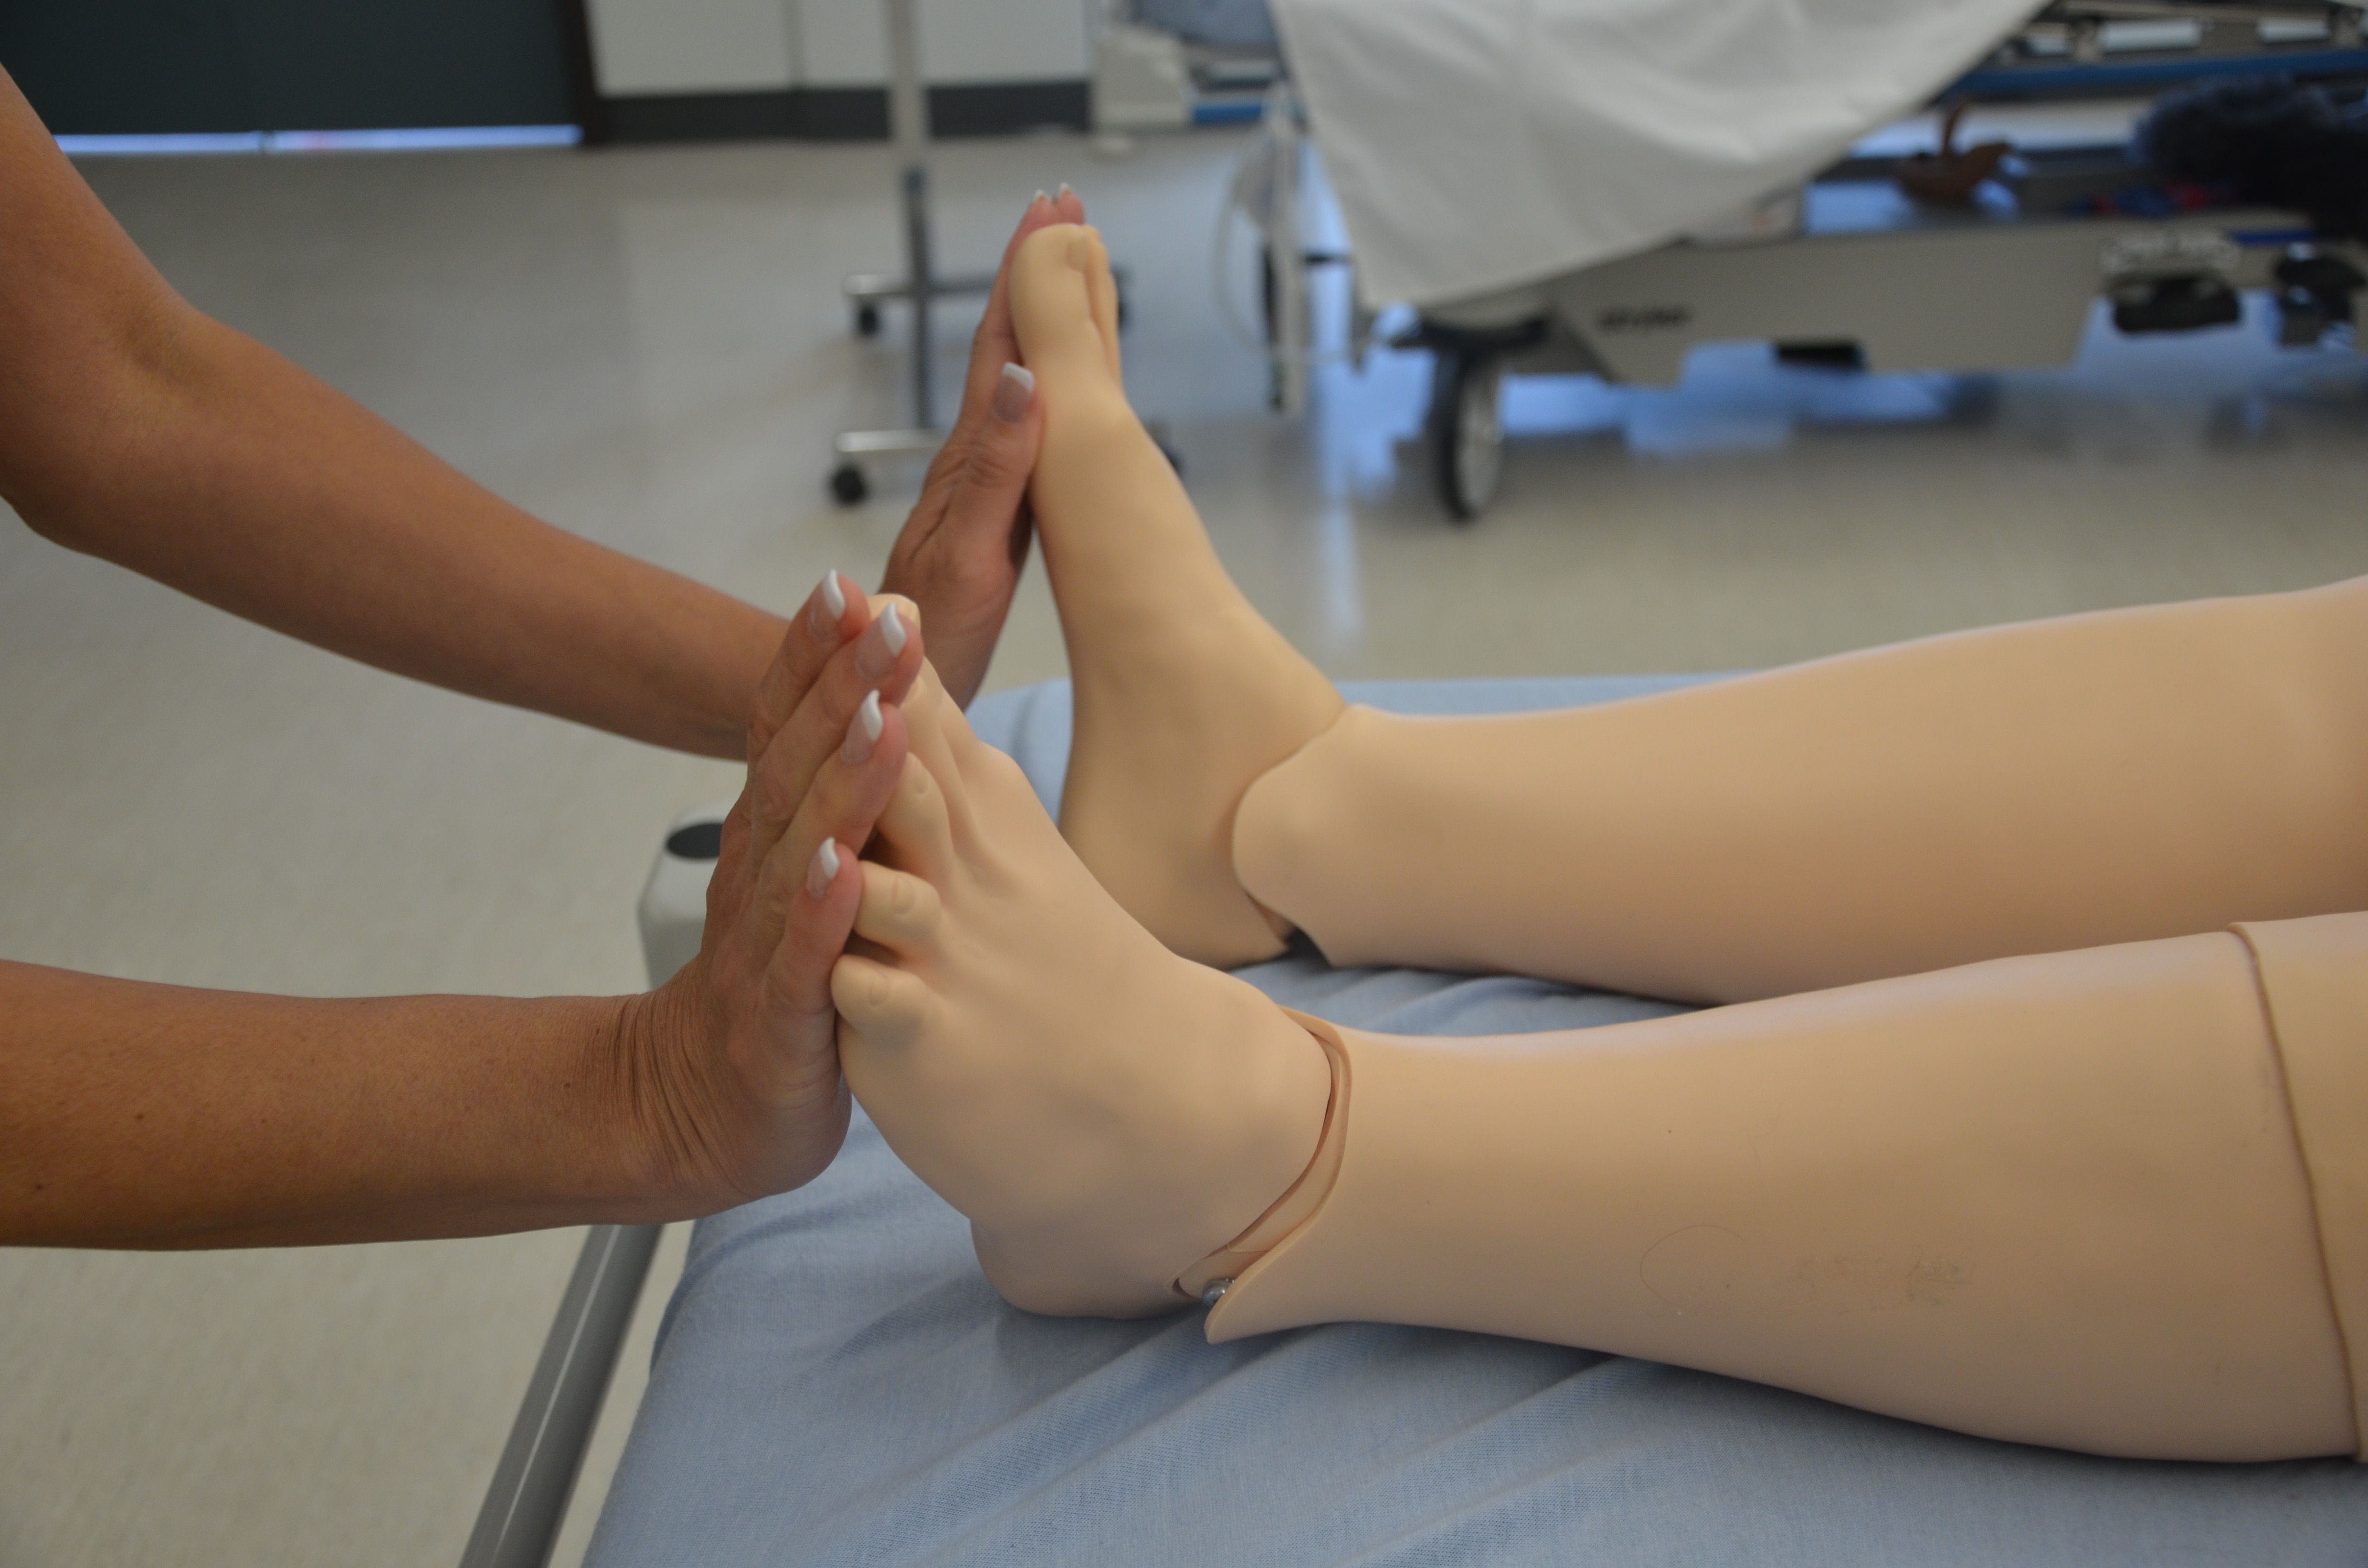 2 5 Head-to-Toe Assessment – Clinical Procedures for Safer Patient Care